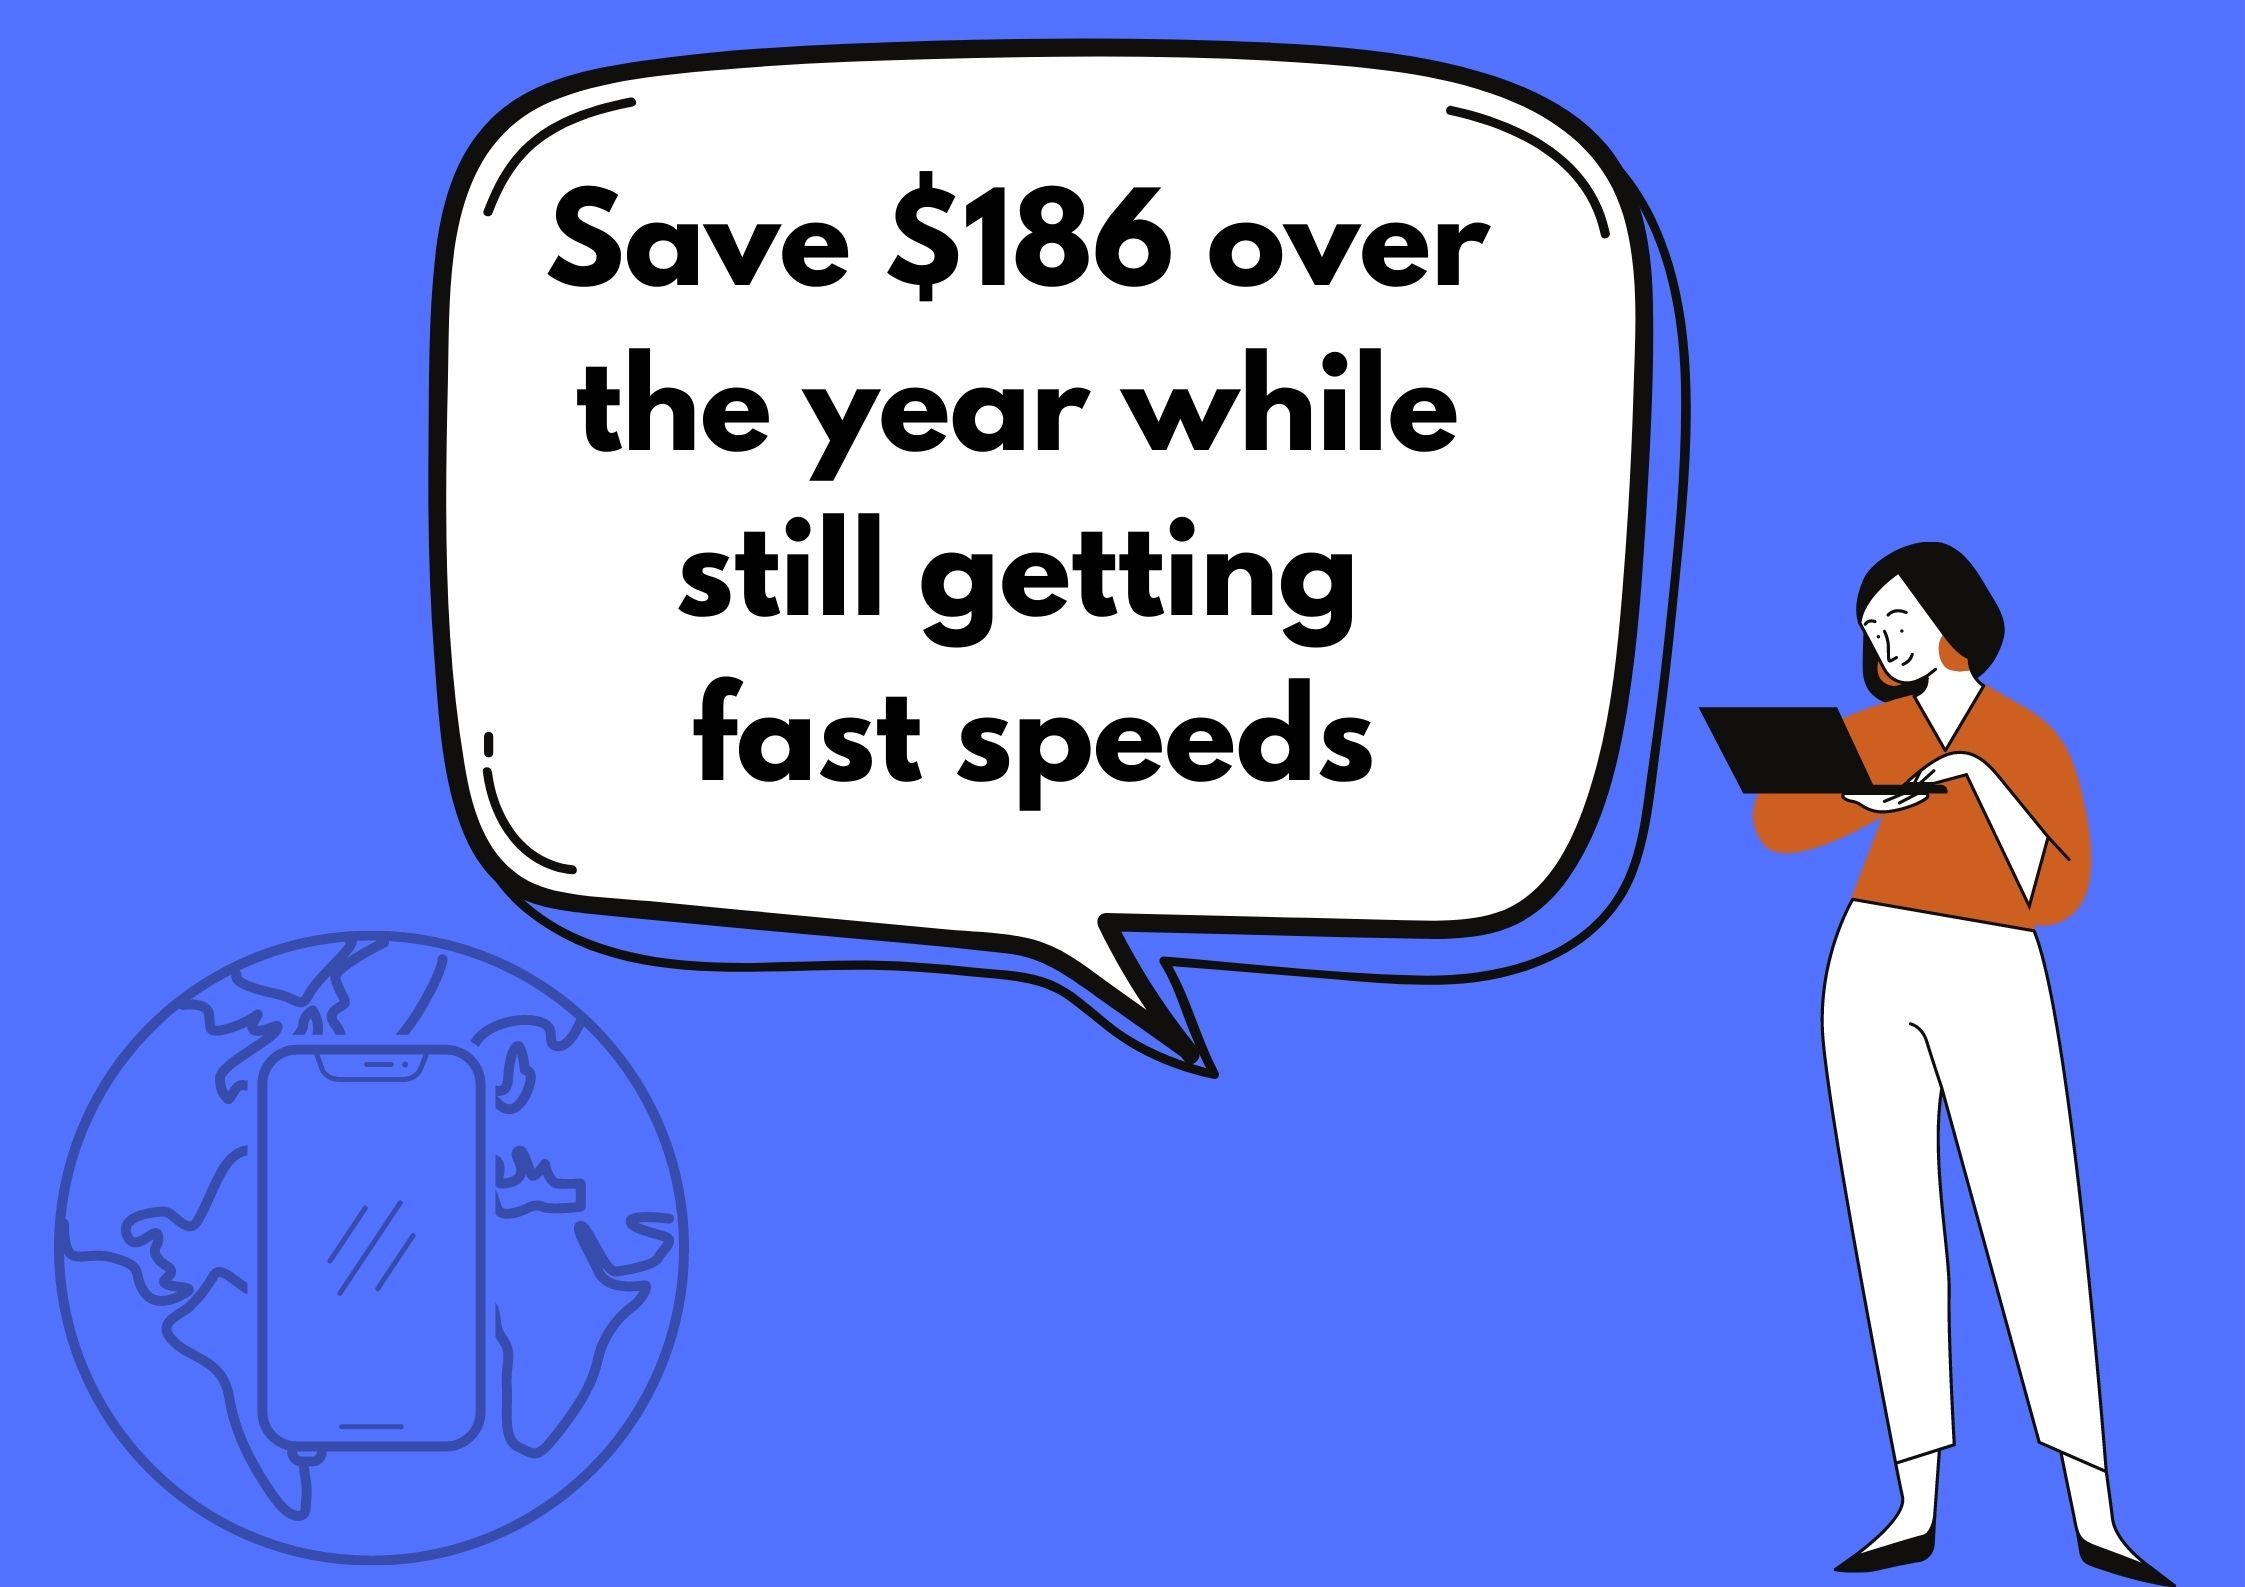 Save $186 over the year while still getting fast speeds